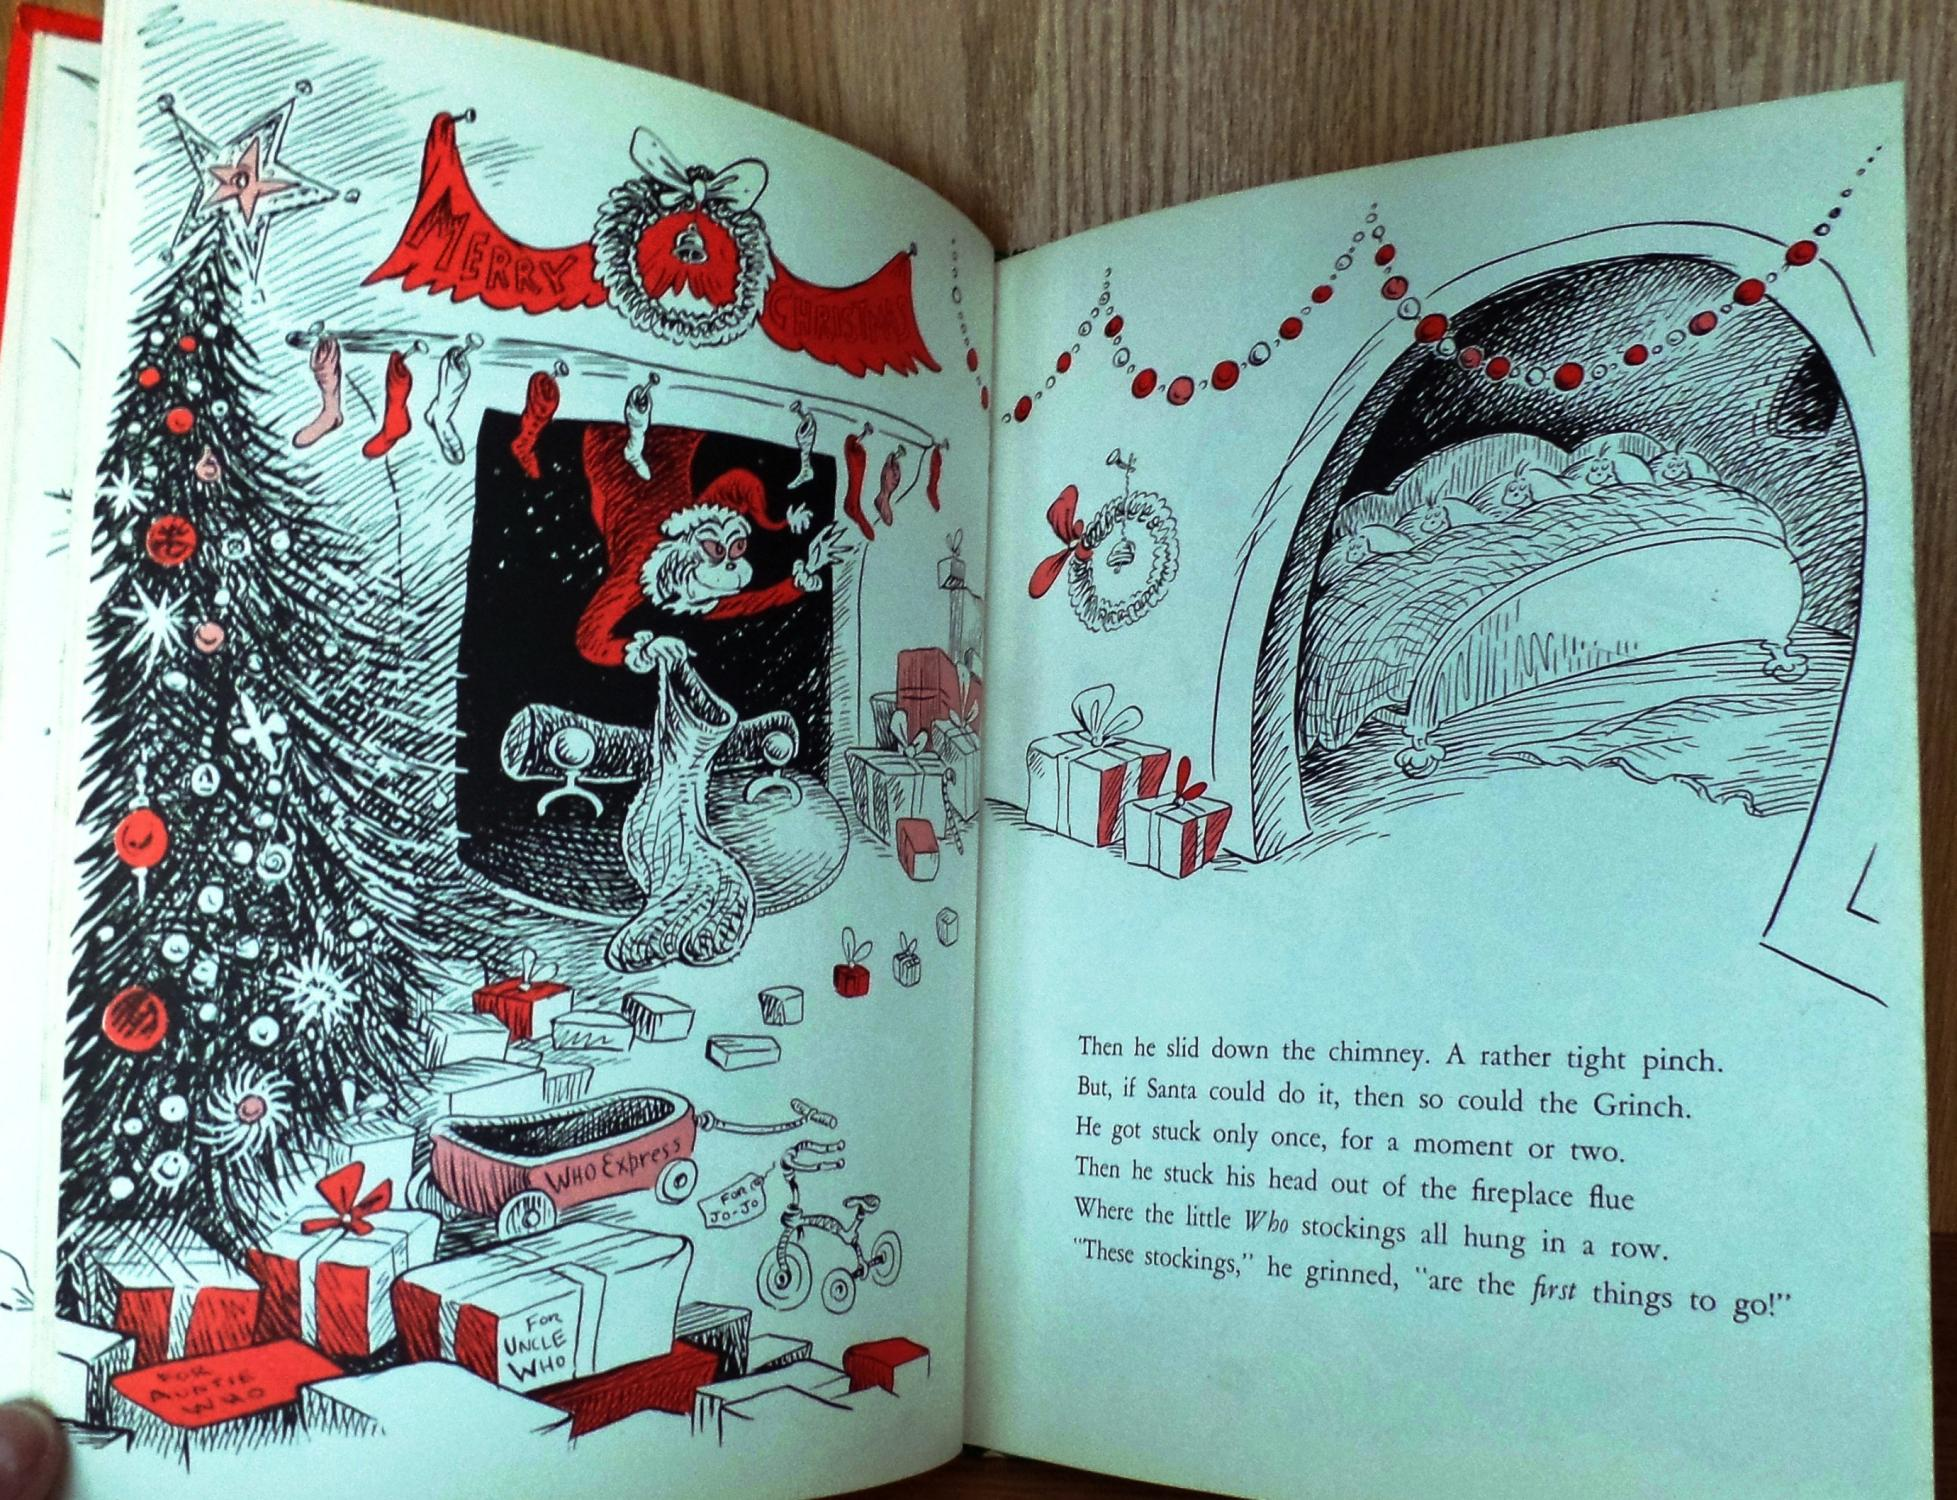 How The Grinch Stole Christmas Book Illustrations.How The Grinch Stole Christmas By Seuss Dr Random House